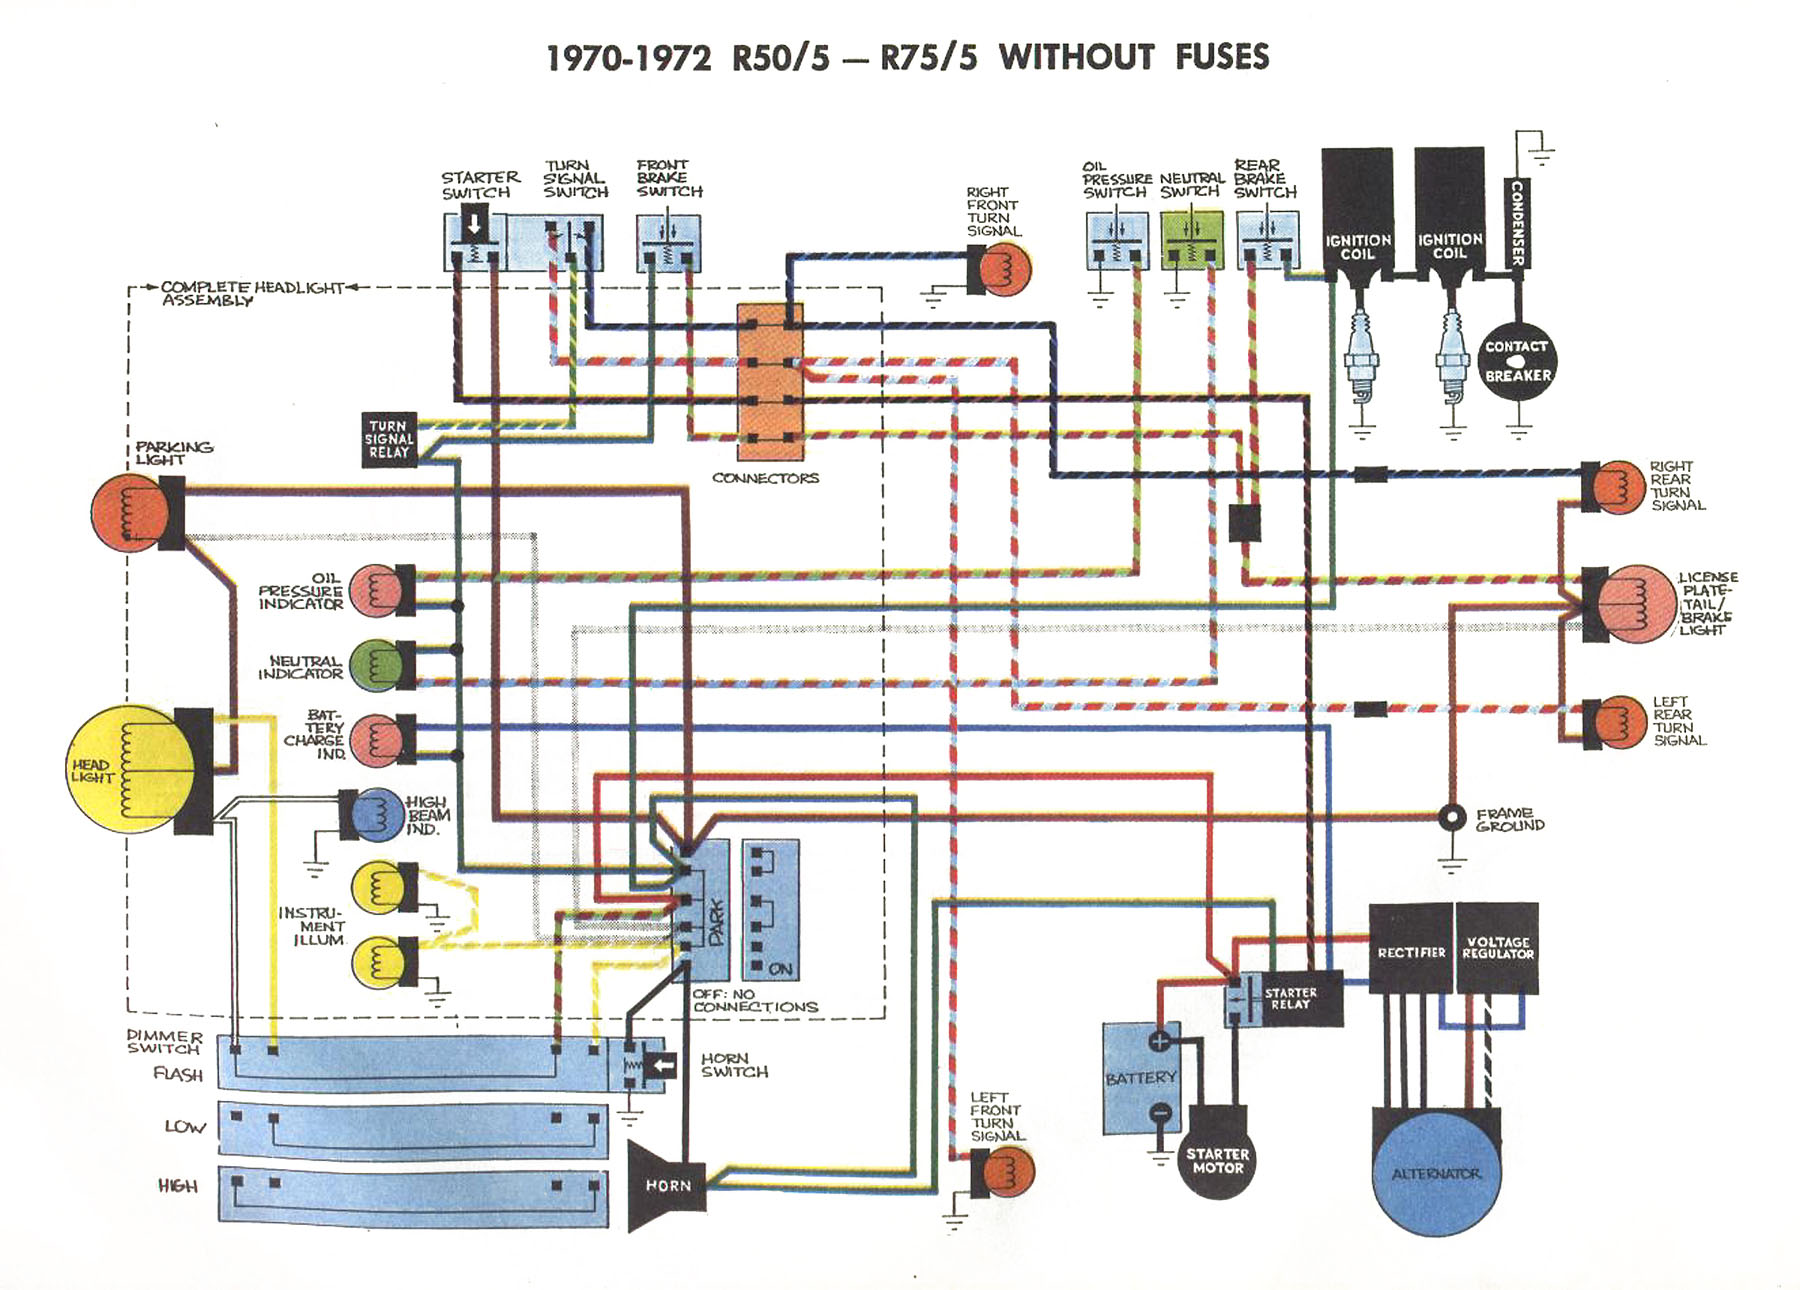 5_unfused_schematic 5 united articles wiring diagrams bmw r100rs gauge wiring diagram at nearapp.co